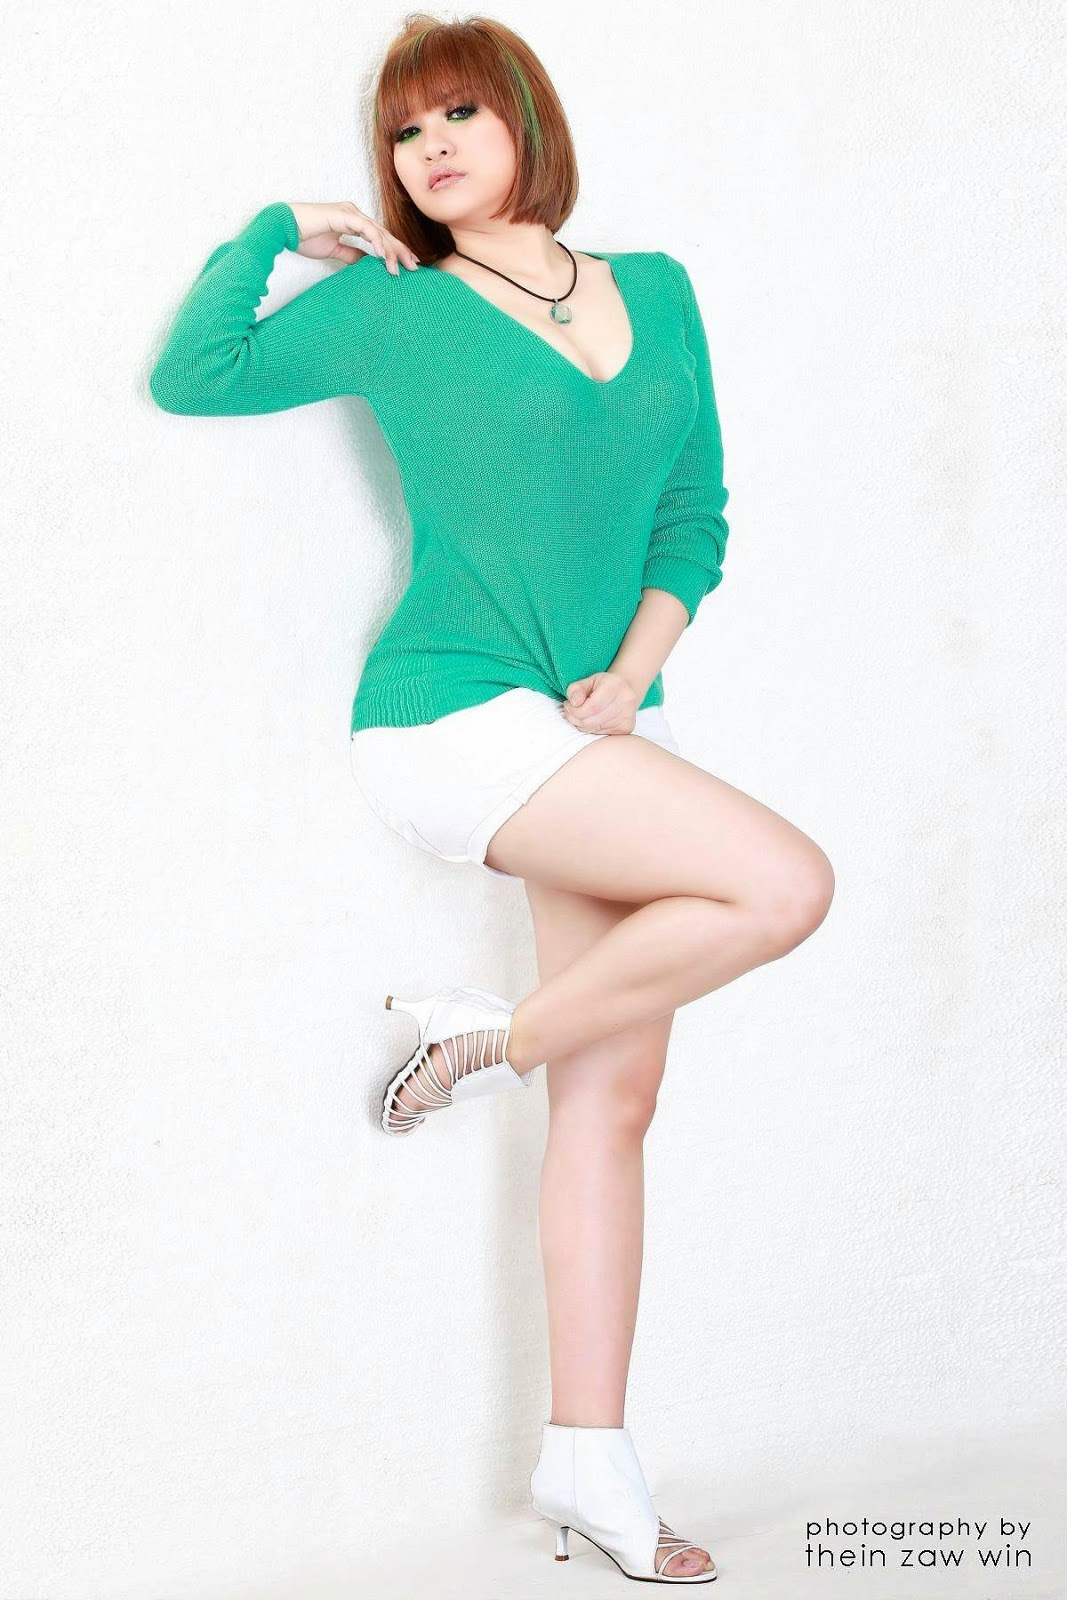 Myanmar Vocal Star, Jenny's Hottie Fashion Photos | Myanmar Singer and